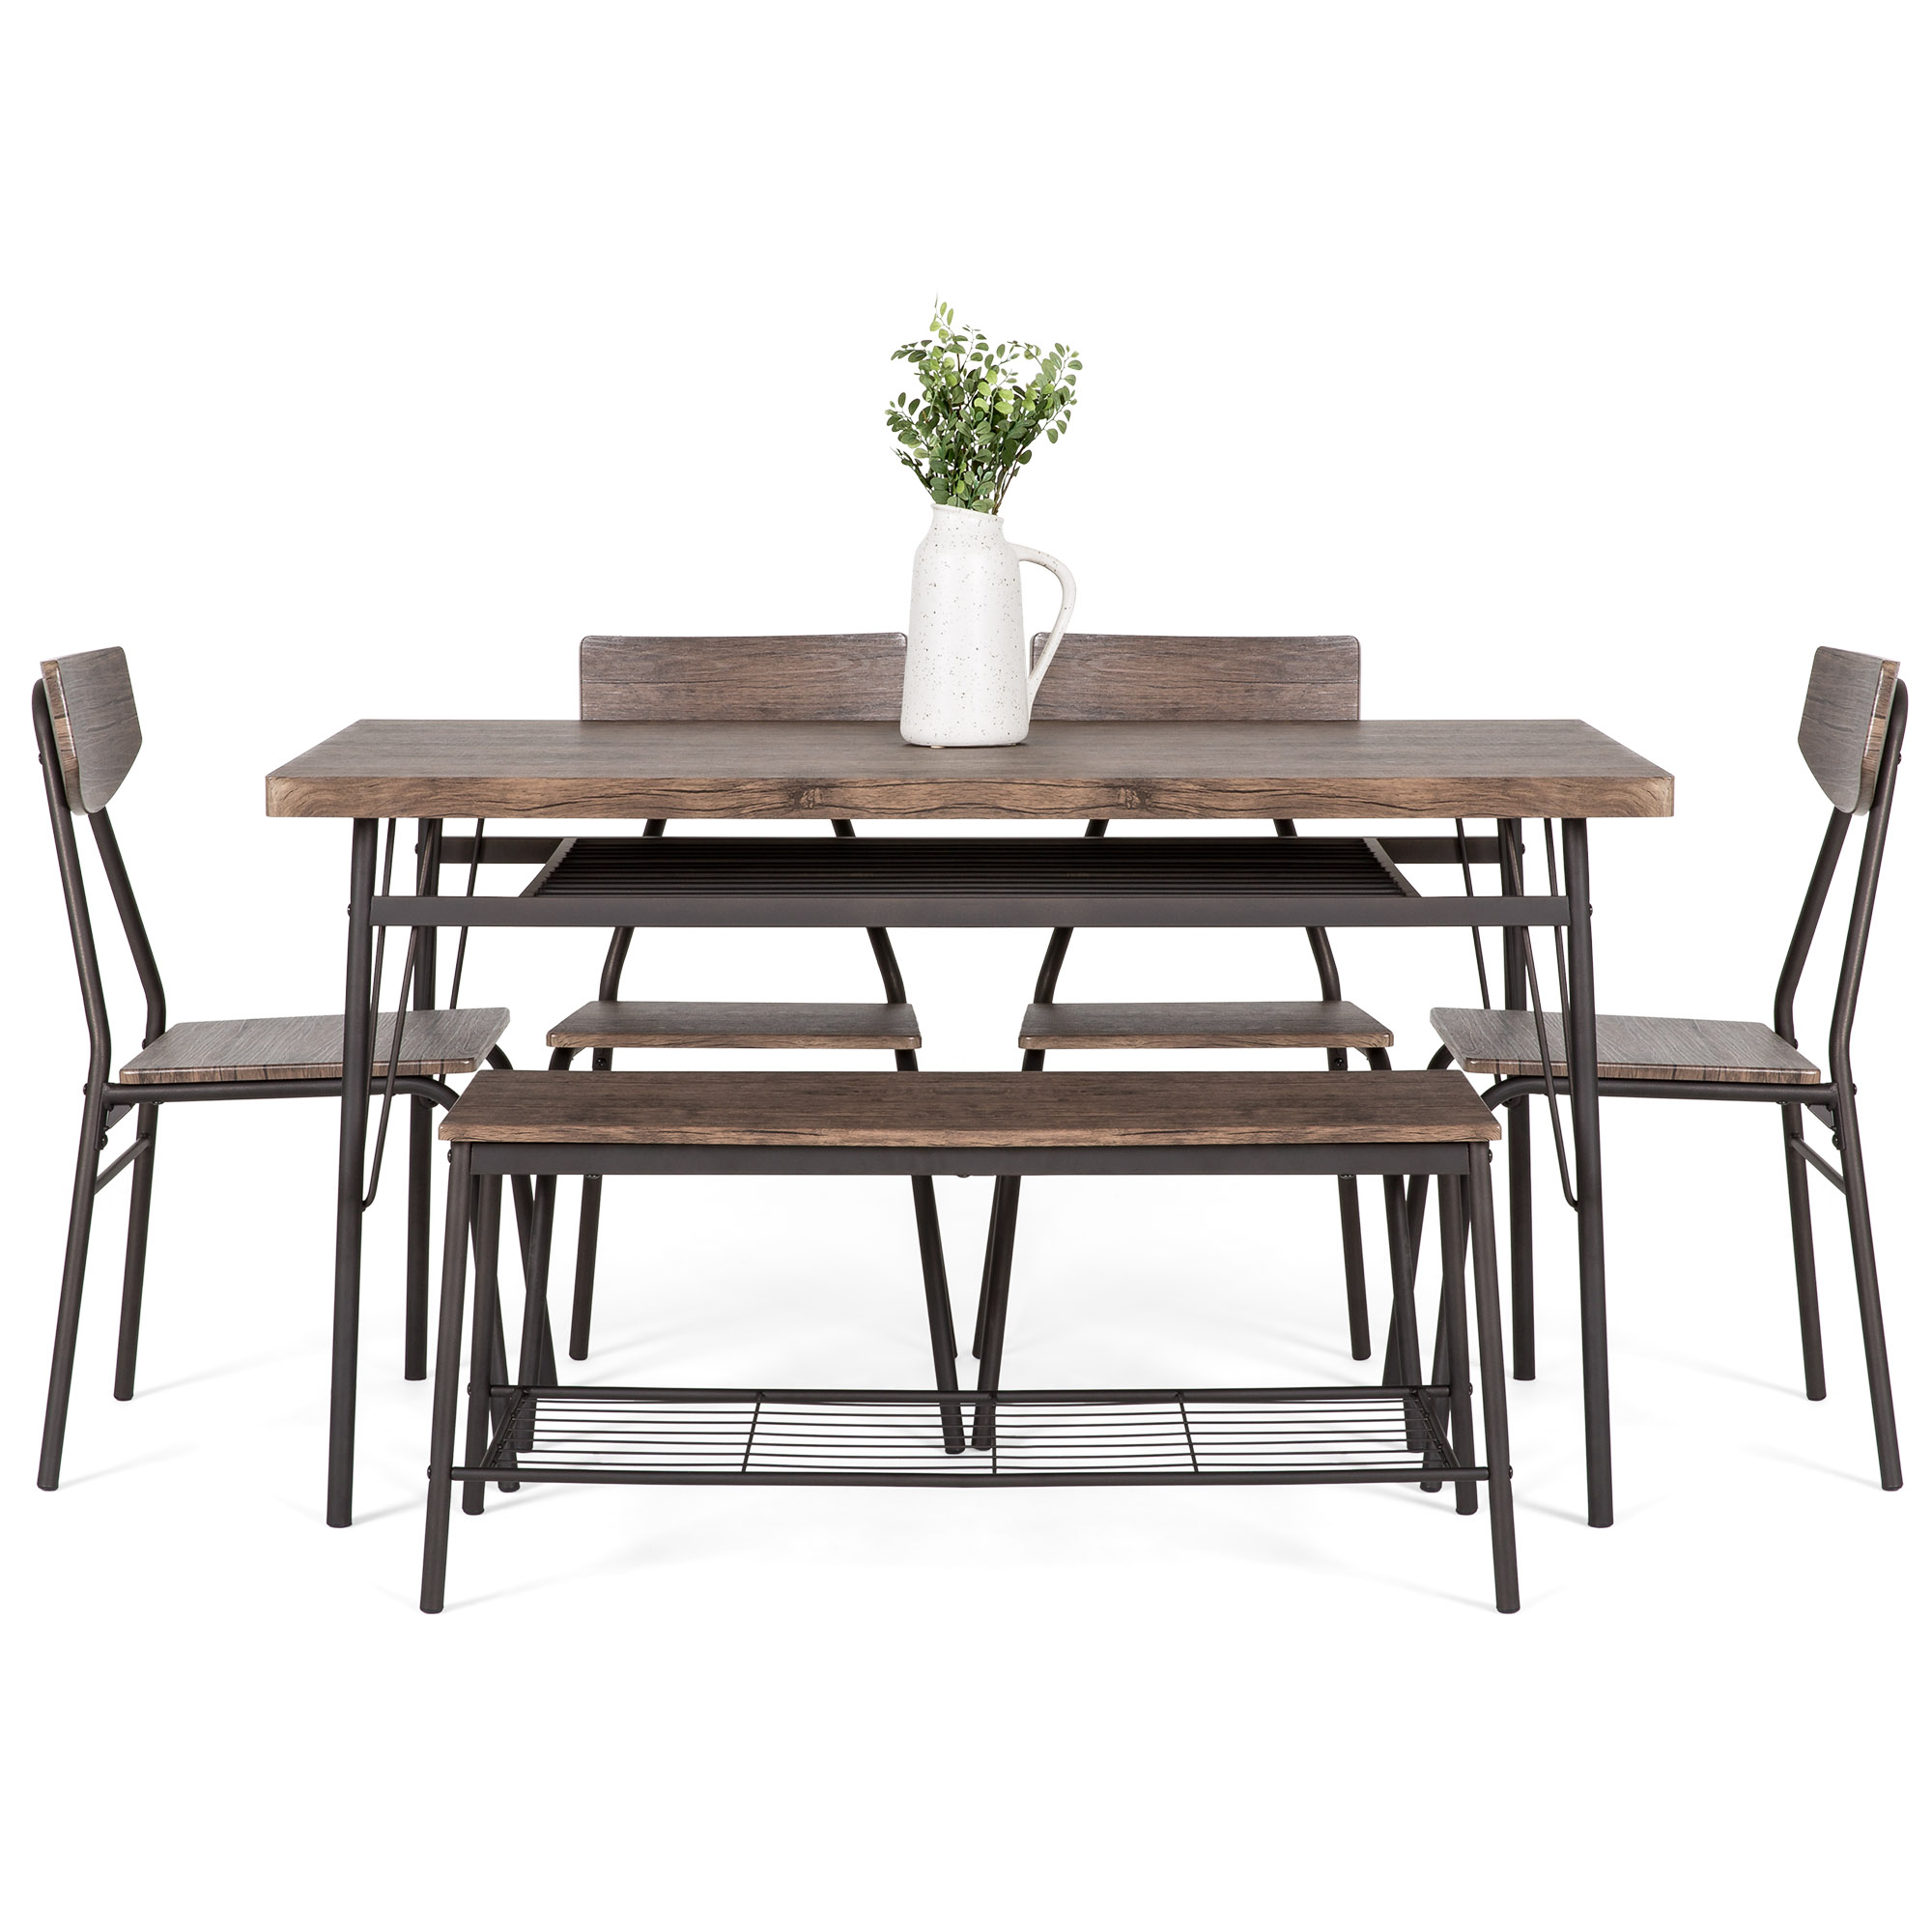 Marvelous Best Choice Products 6 Piece 55In Modern Wood Dining Set For Home Kitchen Dining Room W Storage Racks Rectangular Table Bench 4 Chairs Steel Onthecornerstone Fun Painted Chair Ideas Images Onthecornerstoneorg